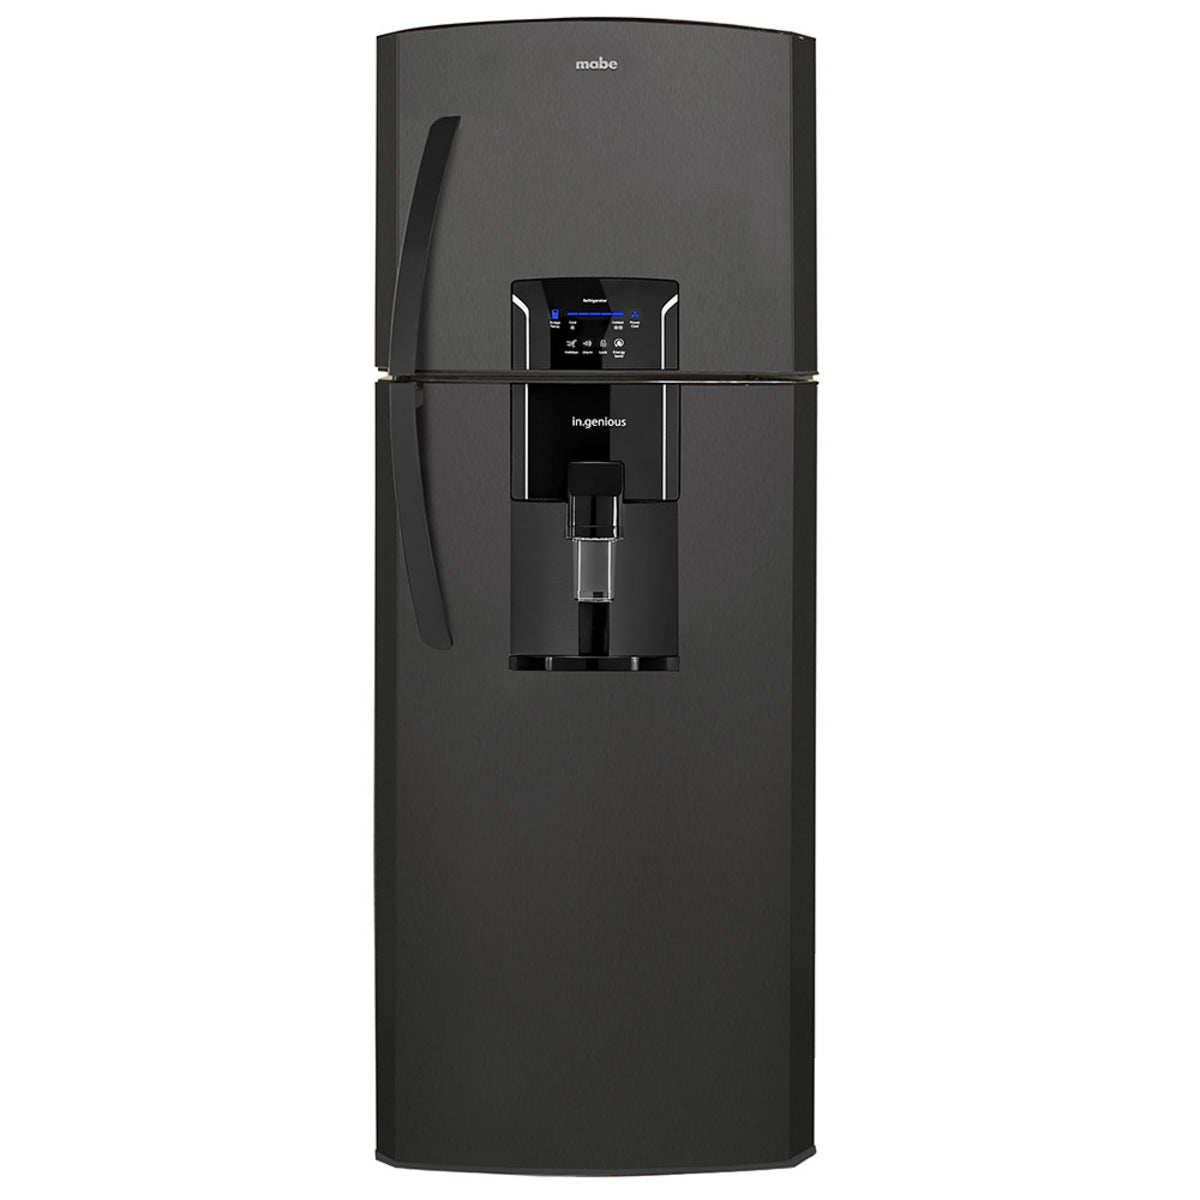 Refrigerador Top Mount, de 11 cu. ft de capacidad, color negro, marca Mabe